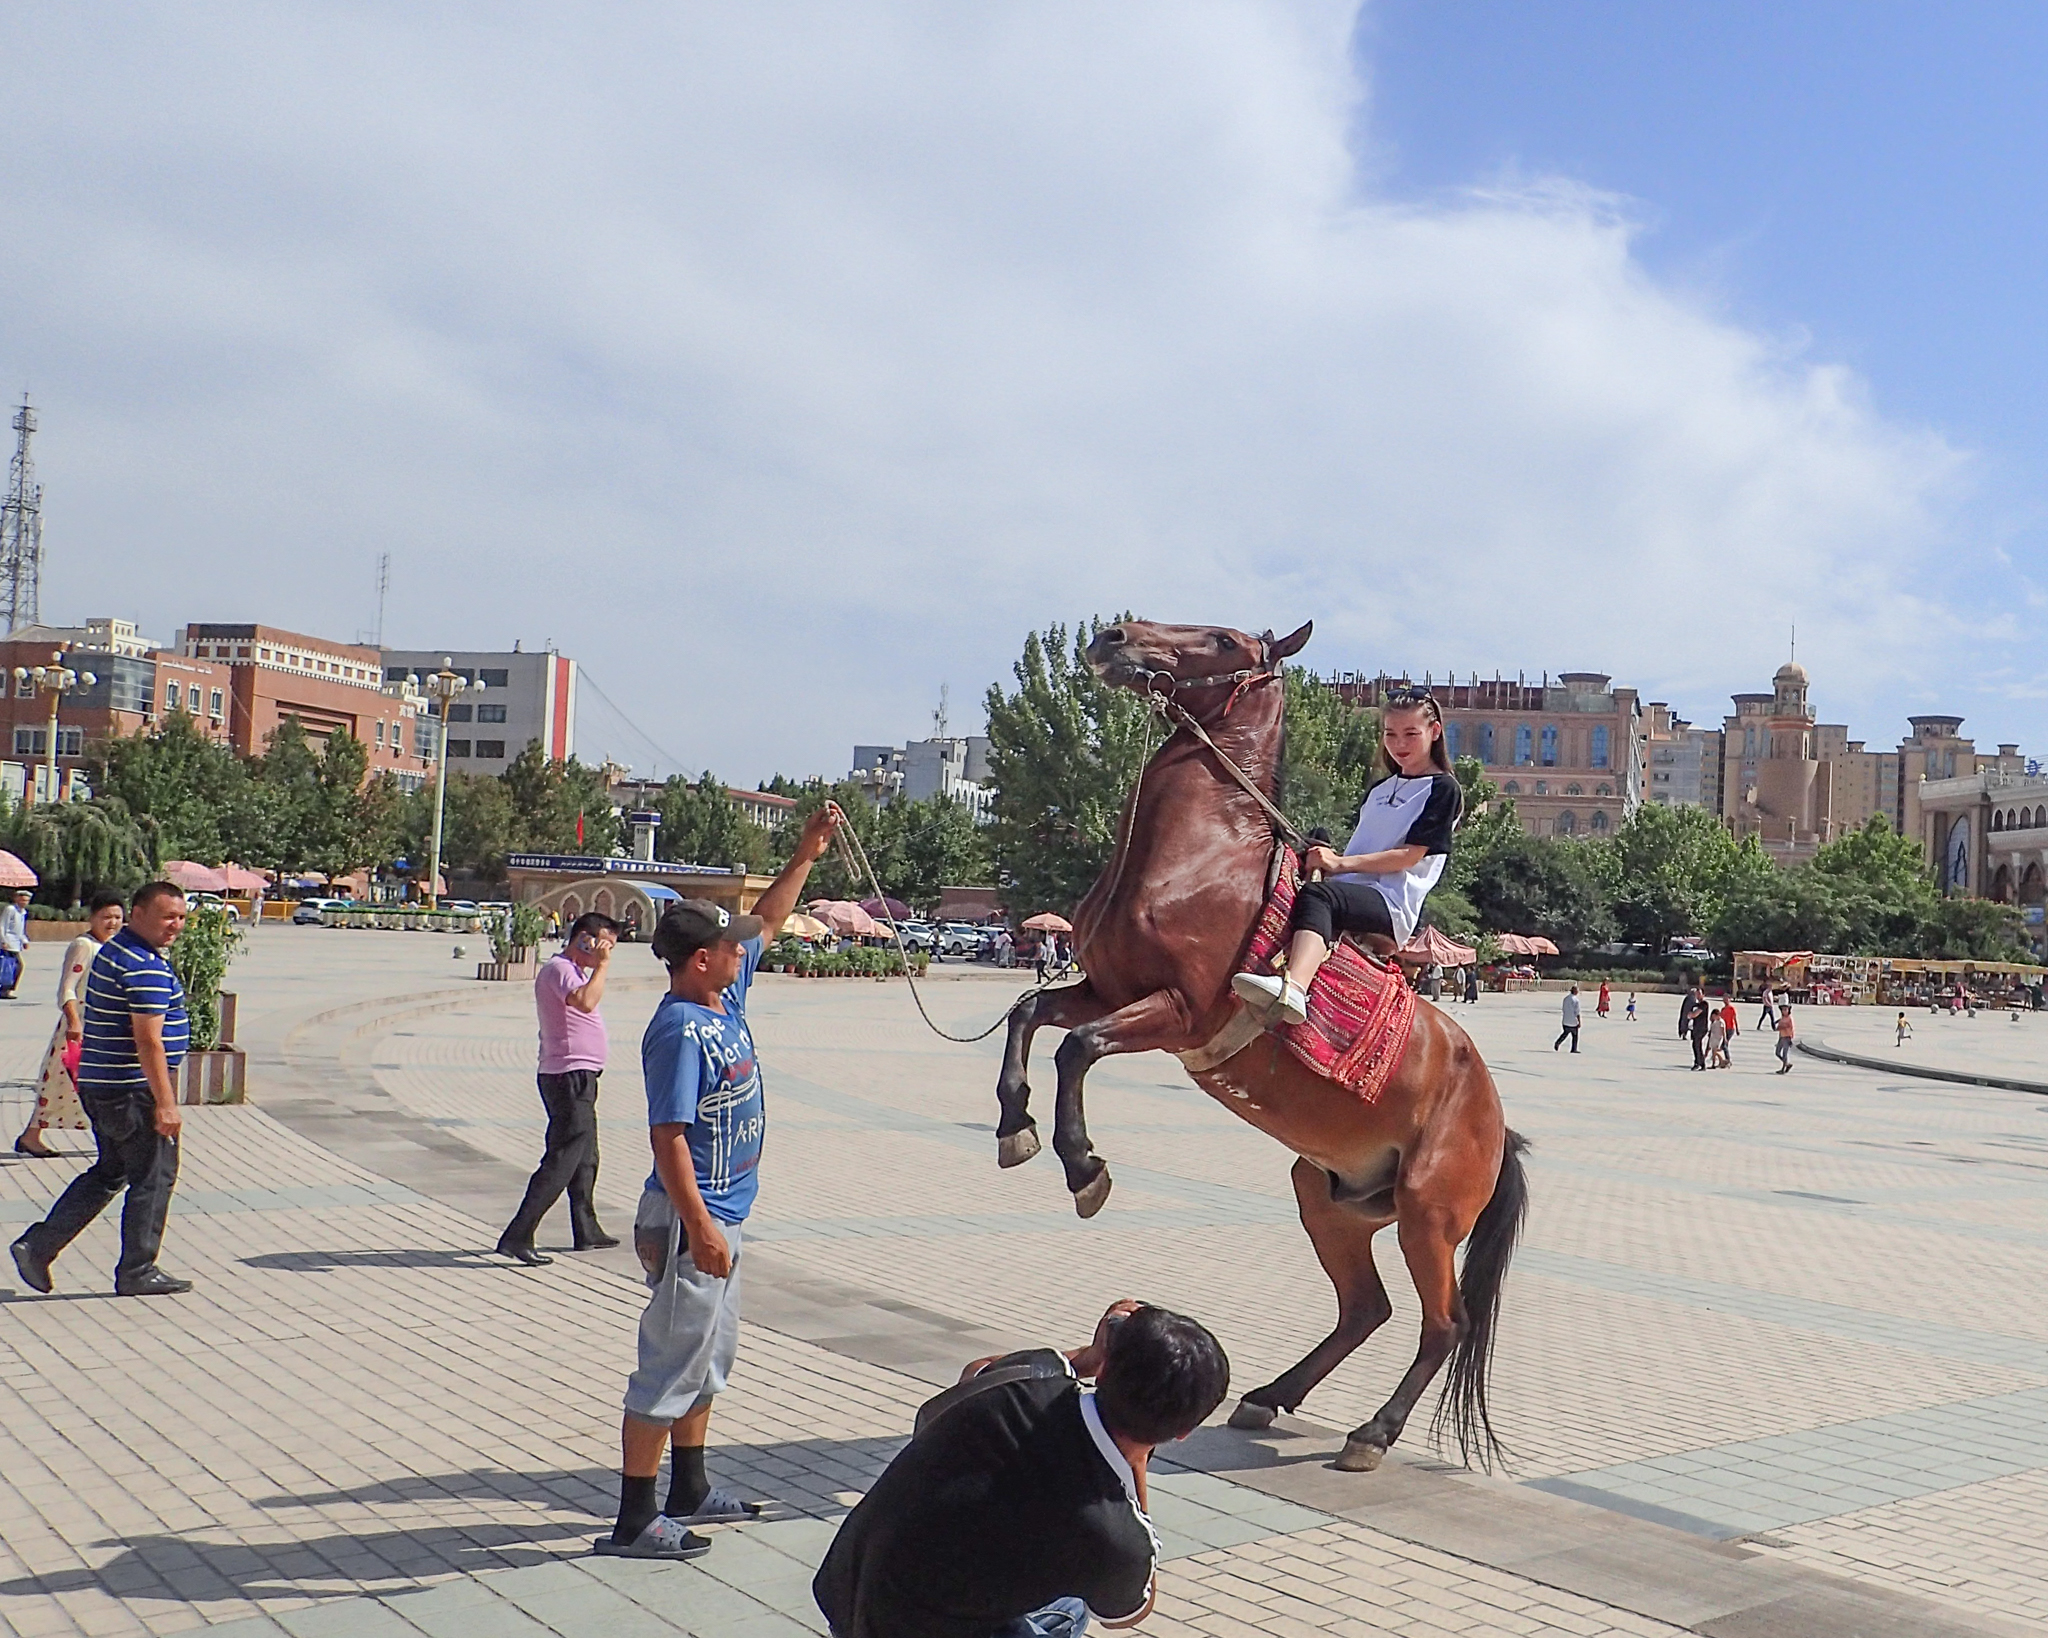 Horse in town